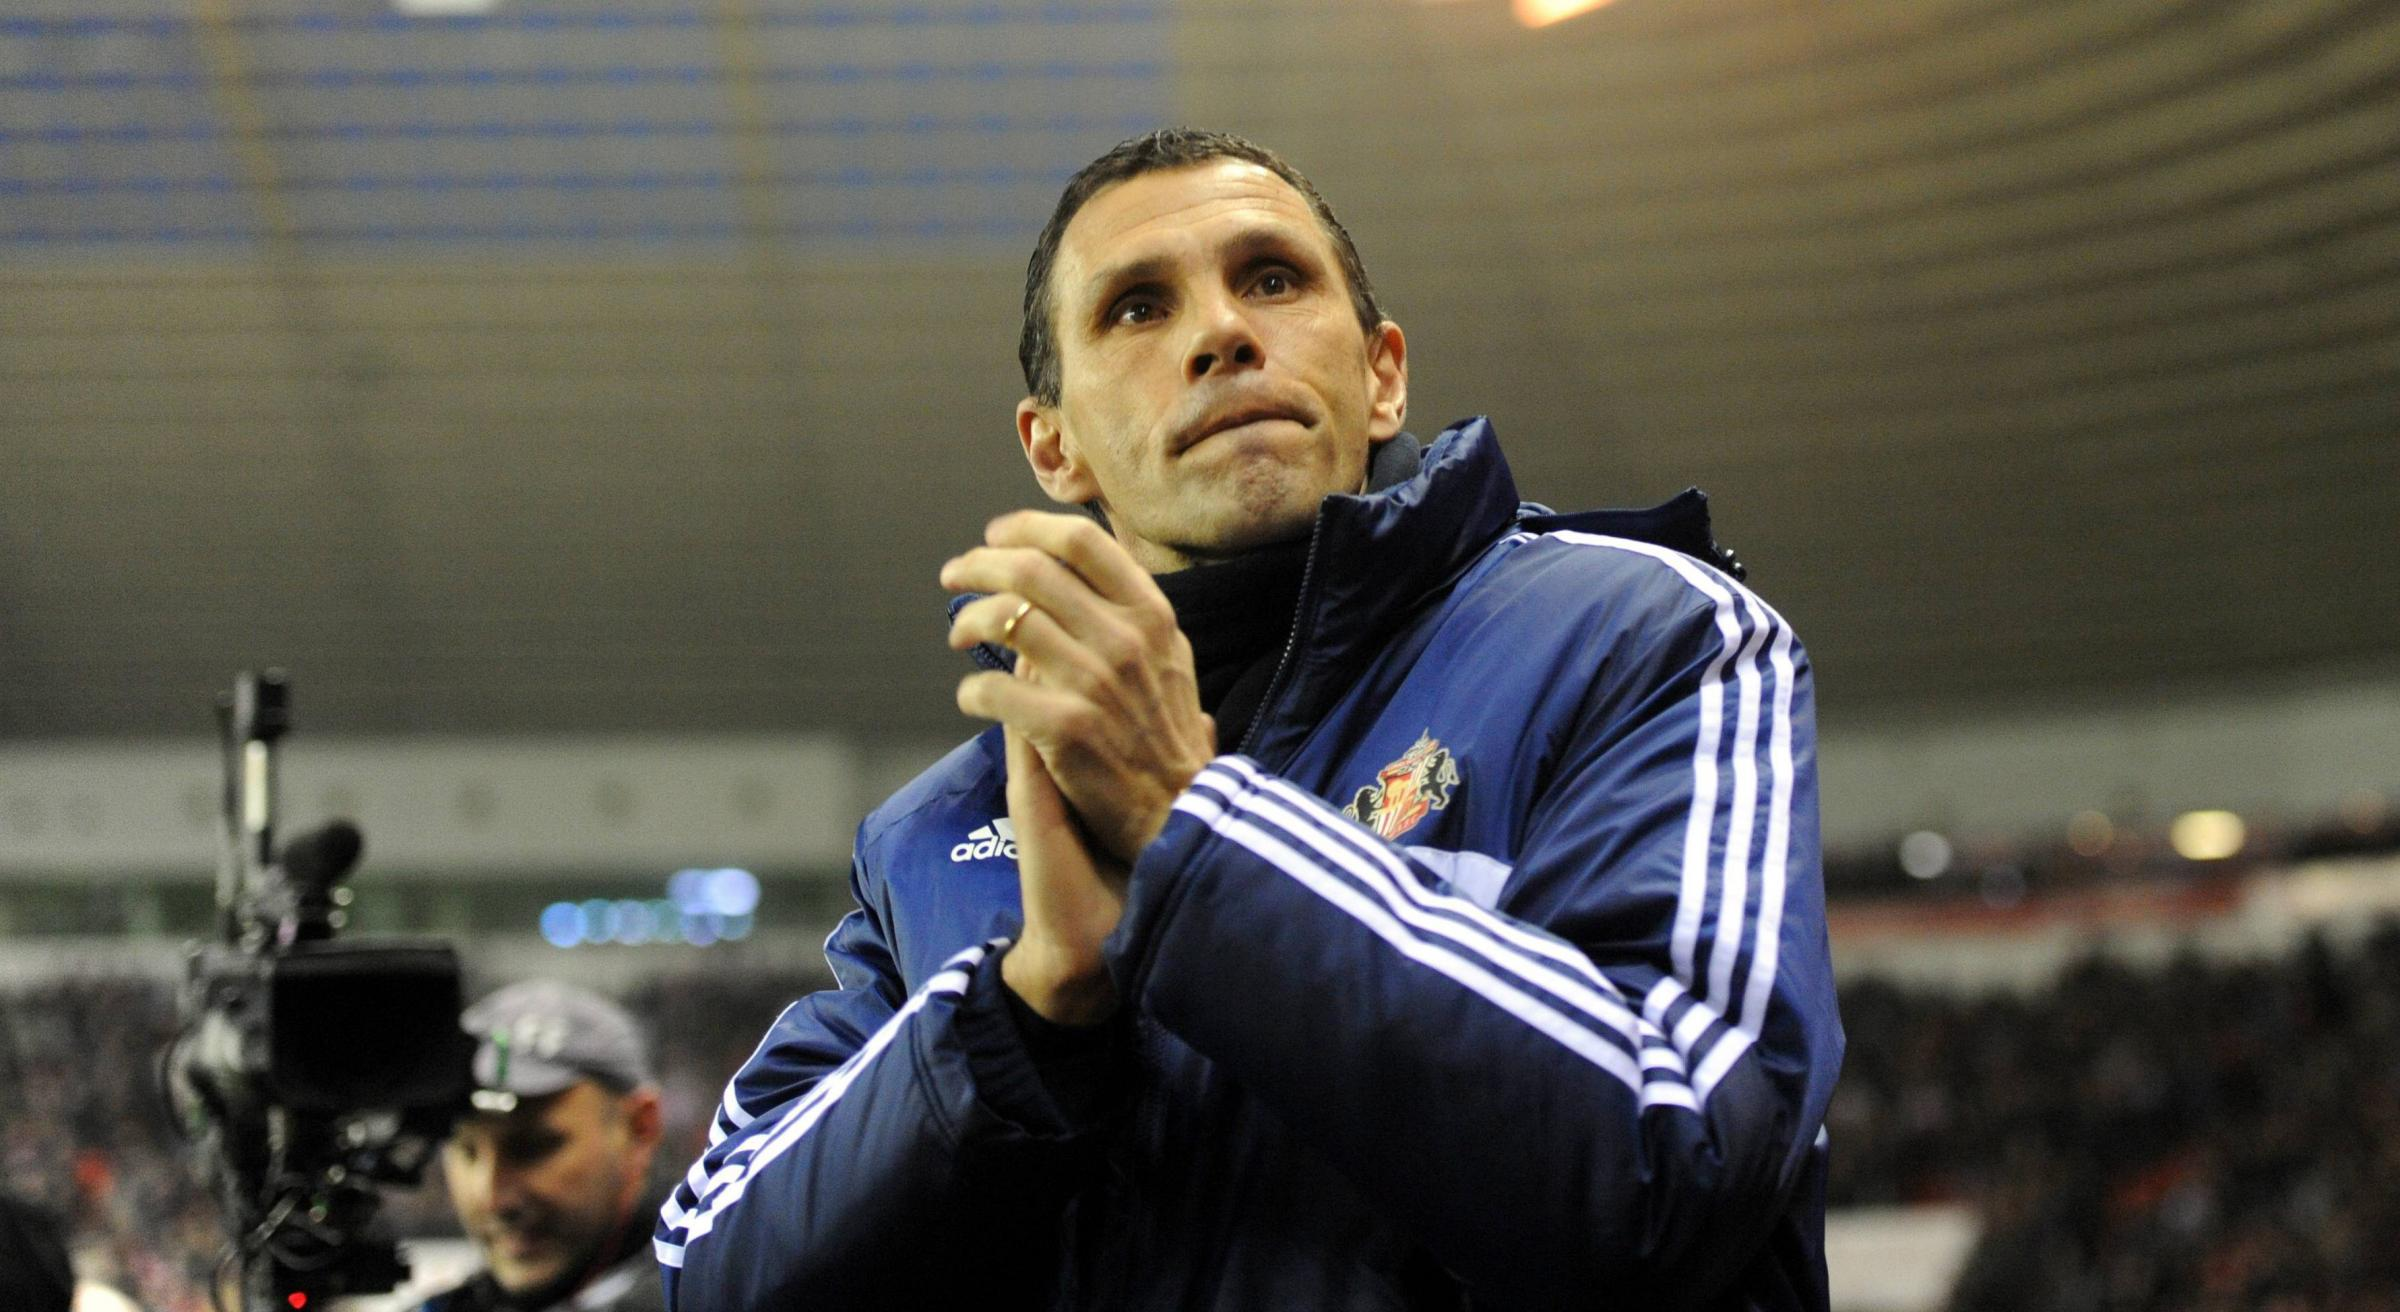 Focused: Gus Poyet has the backing from above